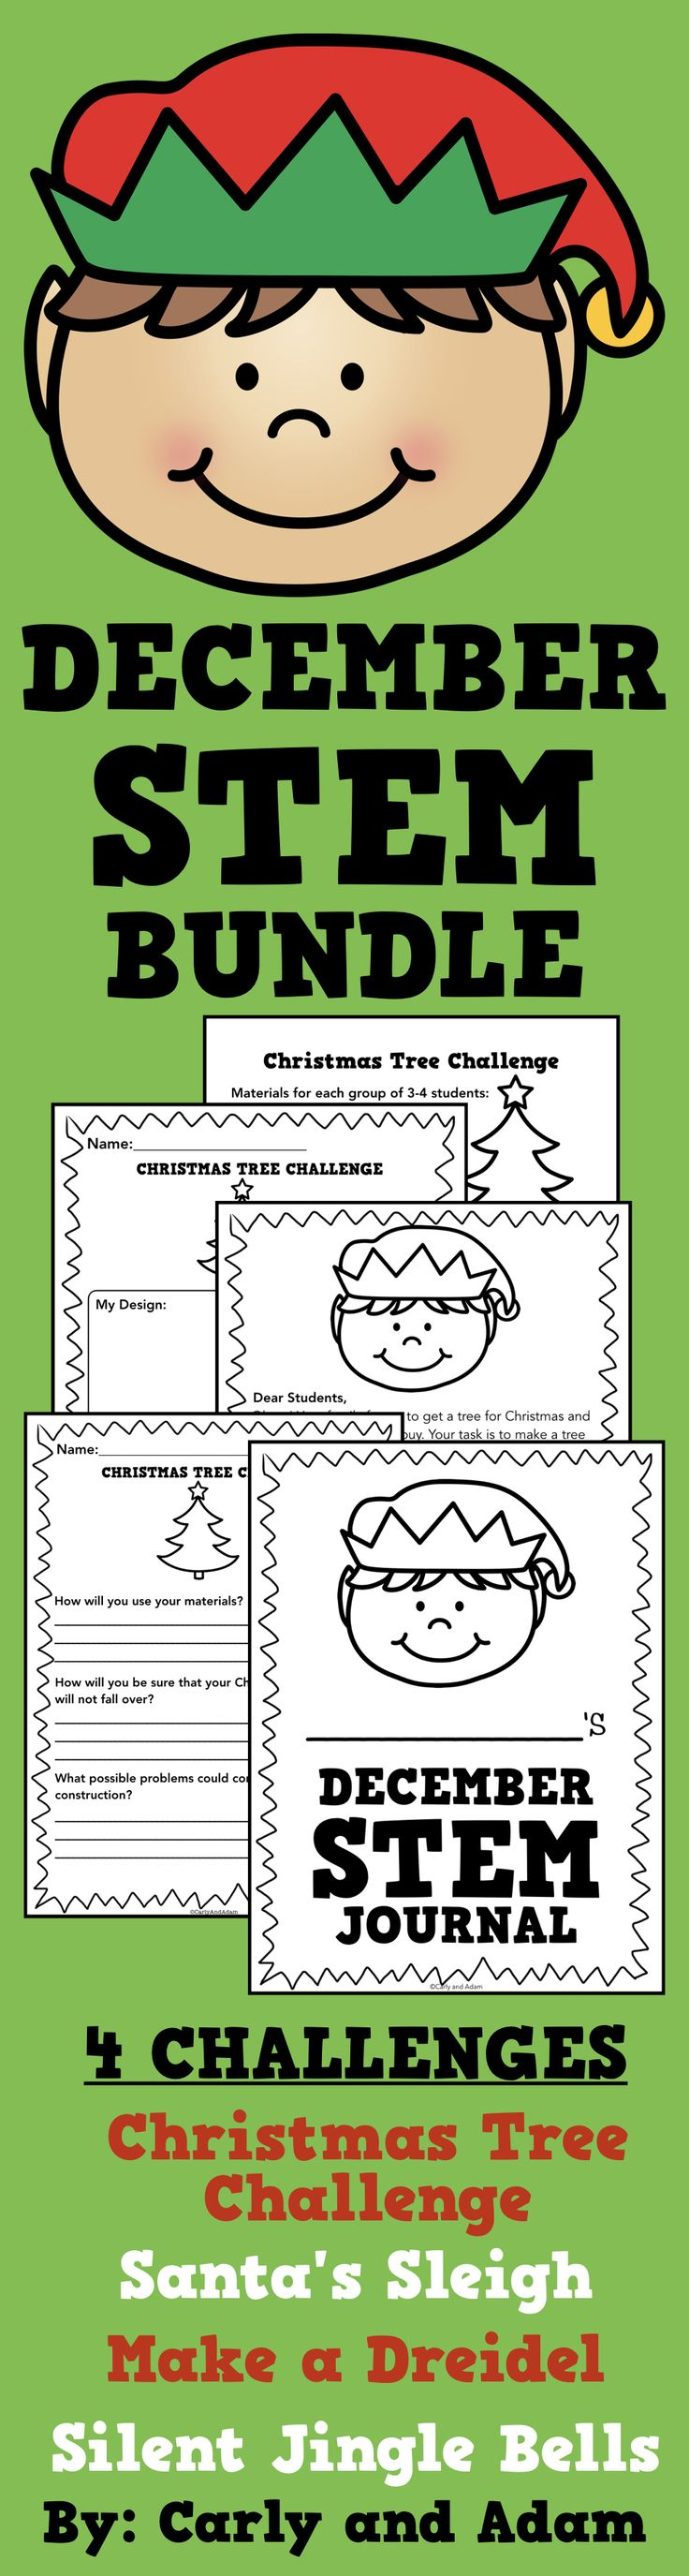 December Christmas and Hanukkah STEM Activities (Chanukah)  Students love completing these Christmas and Hanukkah themed STEM challenges! The students receive letters from the STEM elf who presents them with various challenges that they need to solve using STEM. These are great engaging activities for students to complete during the month of December! 4 Activities are Included: Christmas Tree Challenge, Silent Jingle Bells, Make a Dreidel, and Santa's Sleigh.